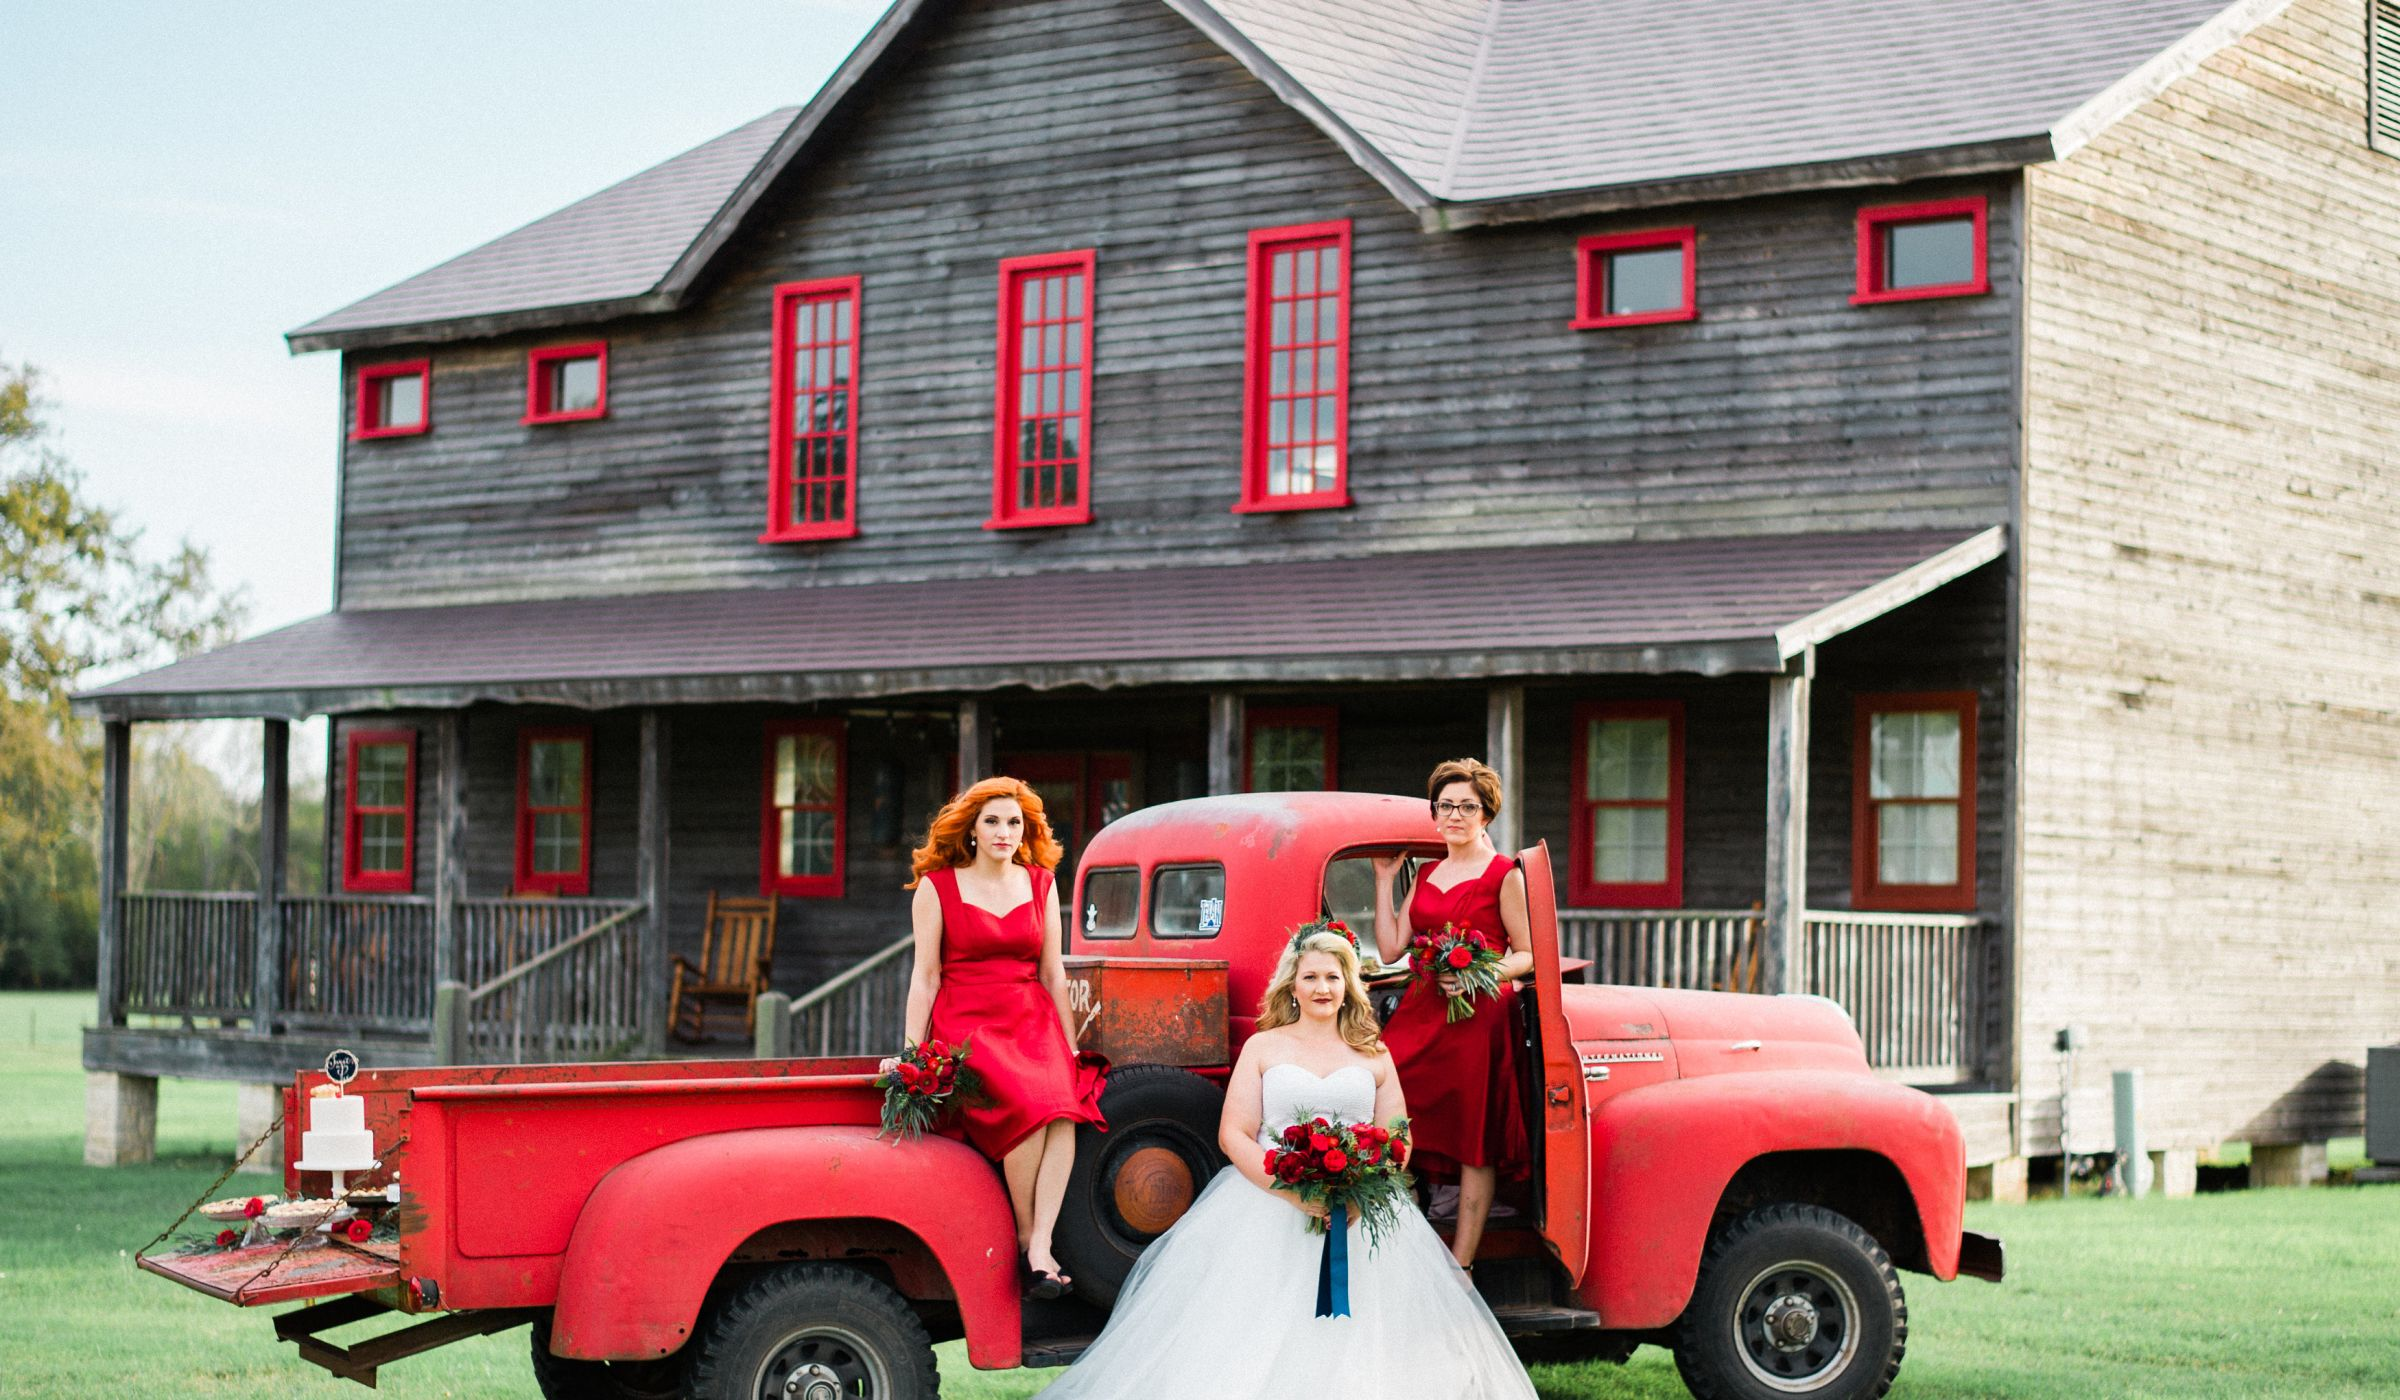 The 12 Questions To Ask A Wedding Venue BEFORE Booking